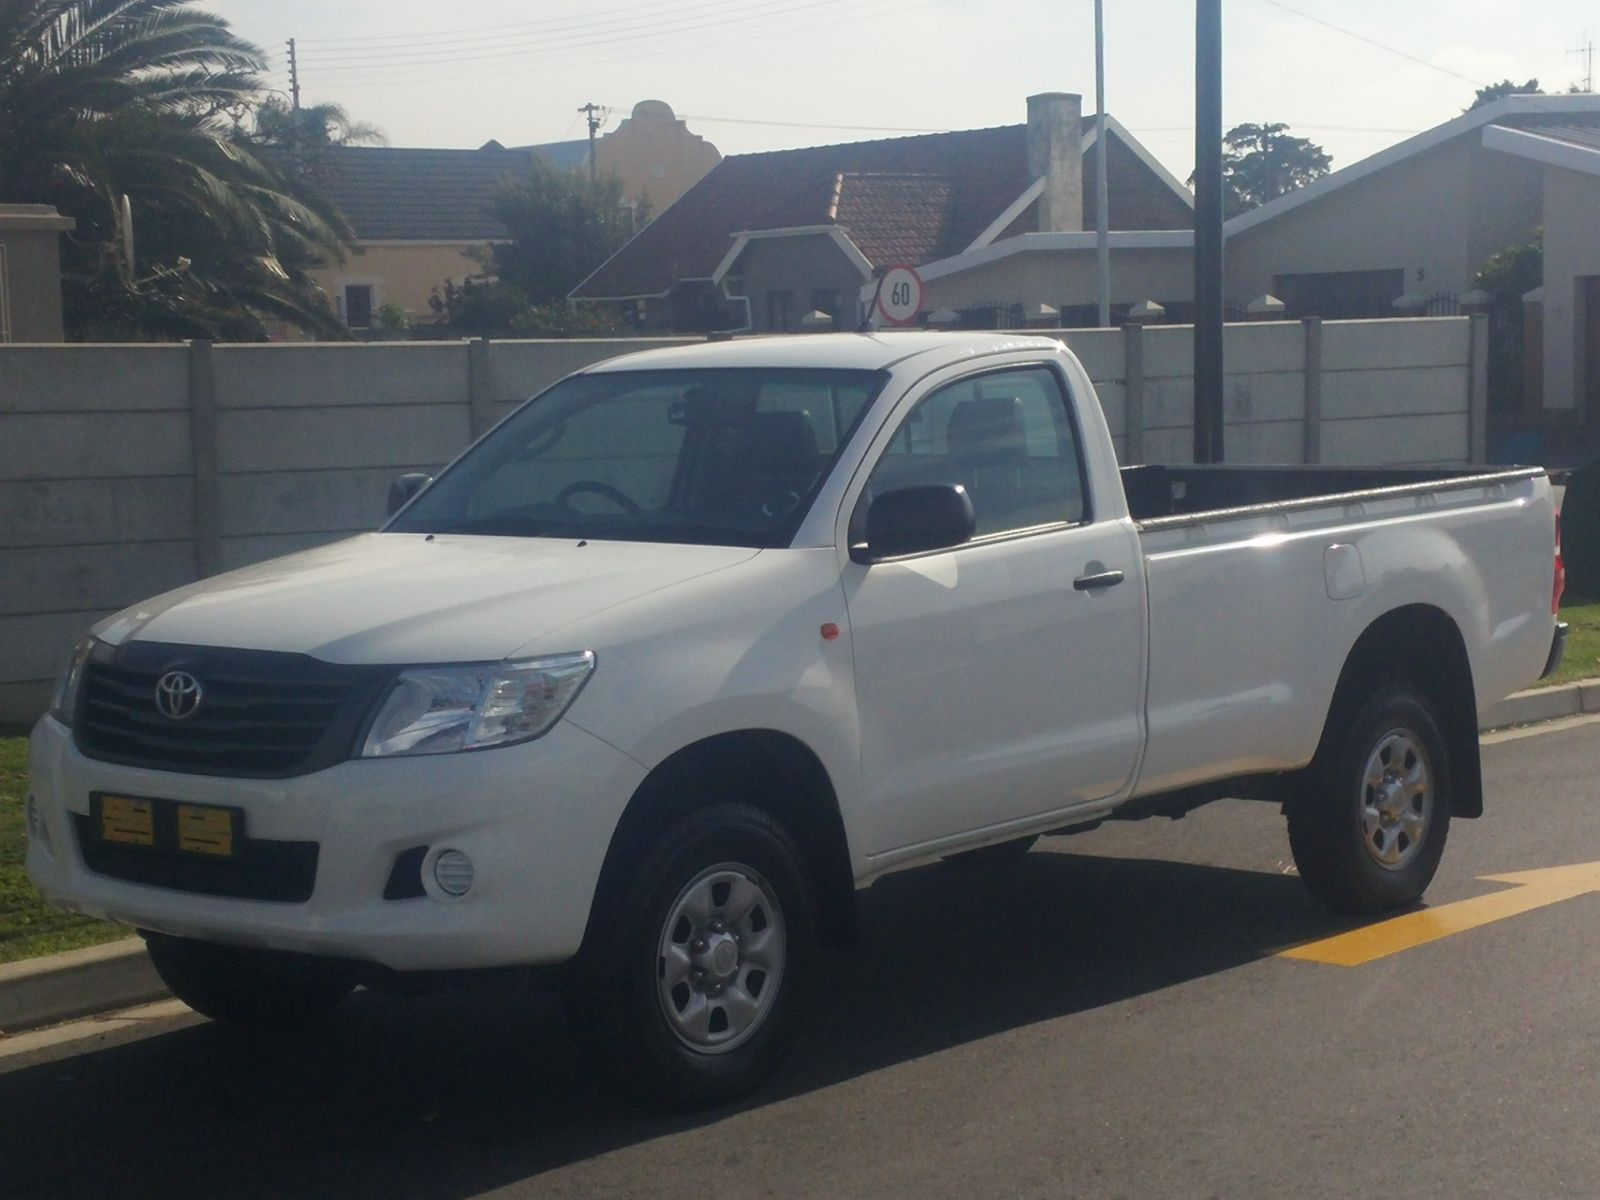 HILUX HILUX 2 5 D-4D SRX R/B P/U S/C Specifications